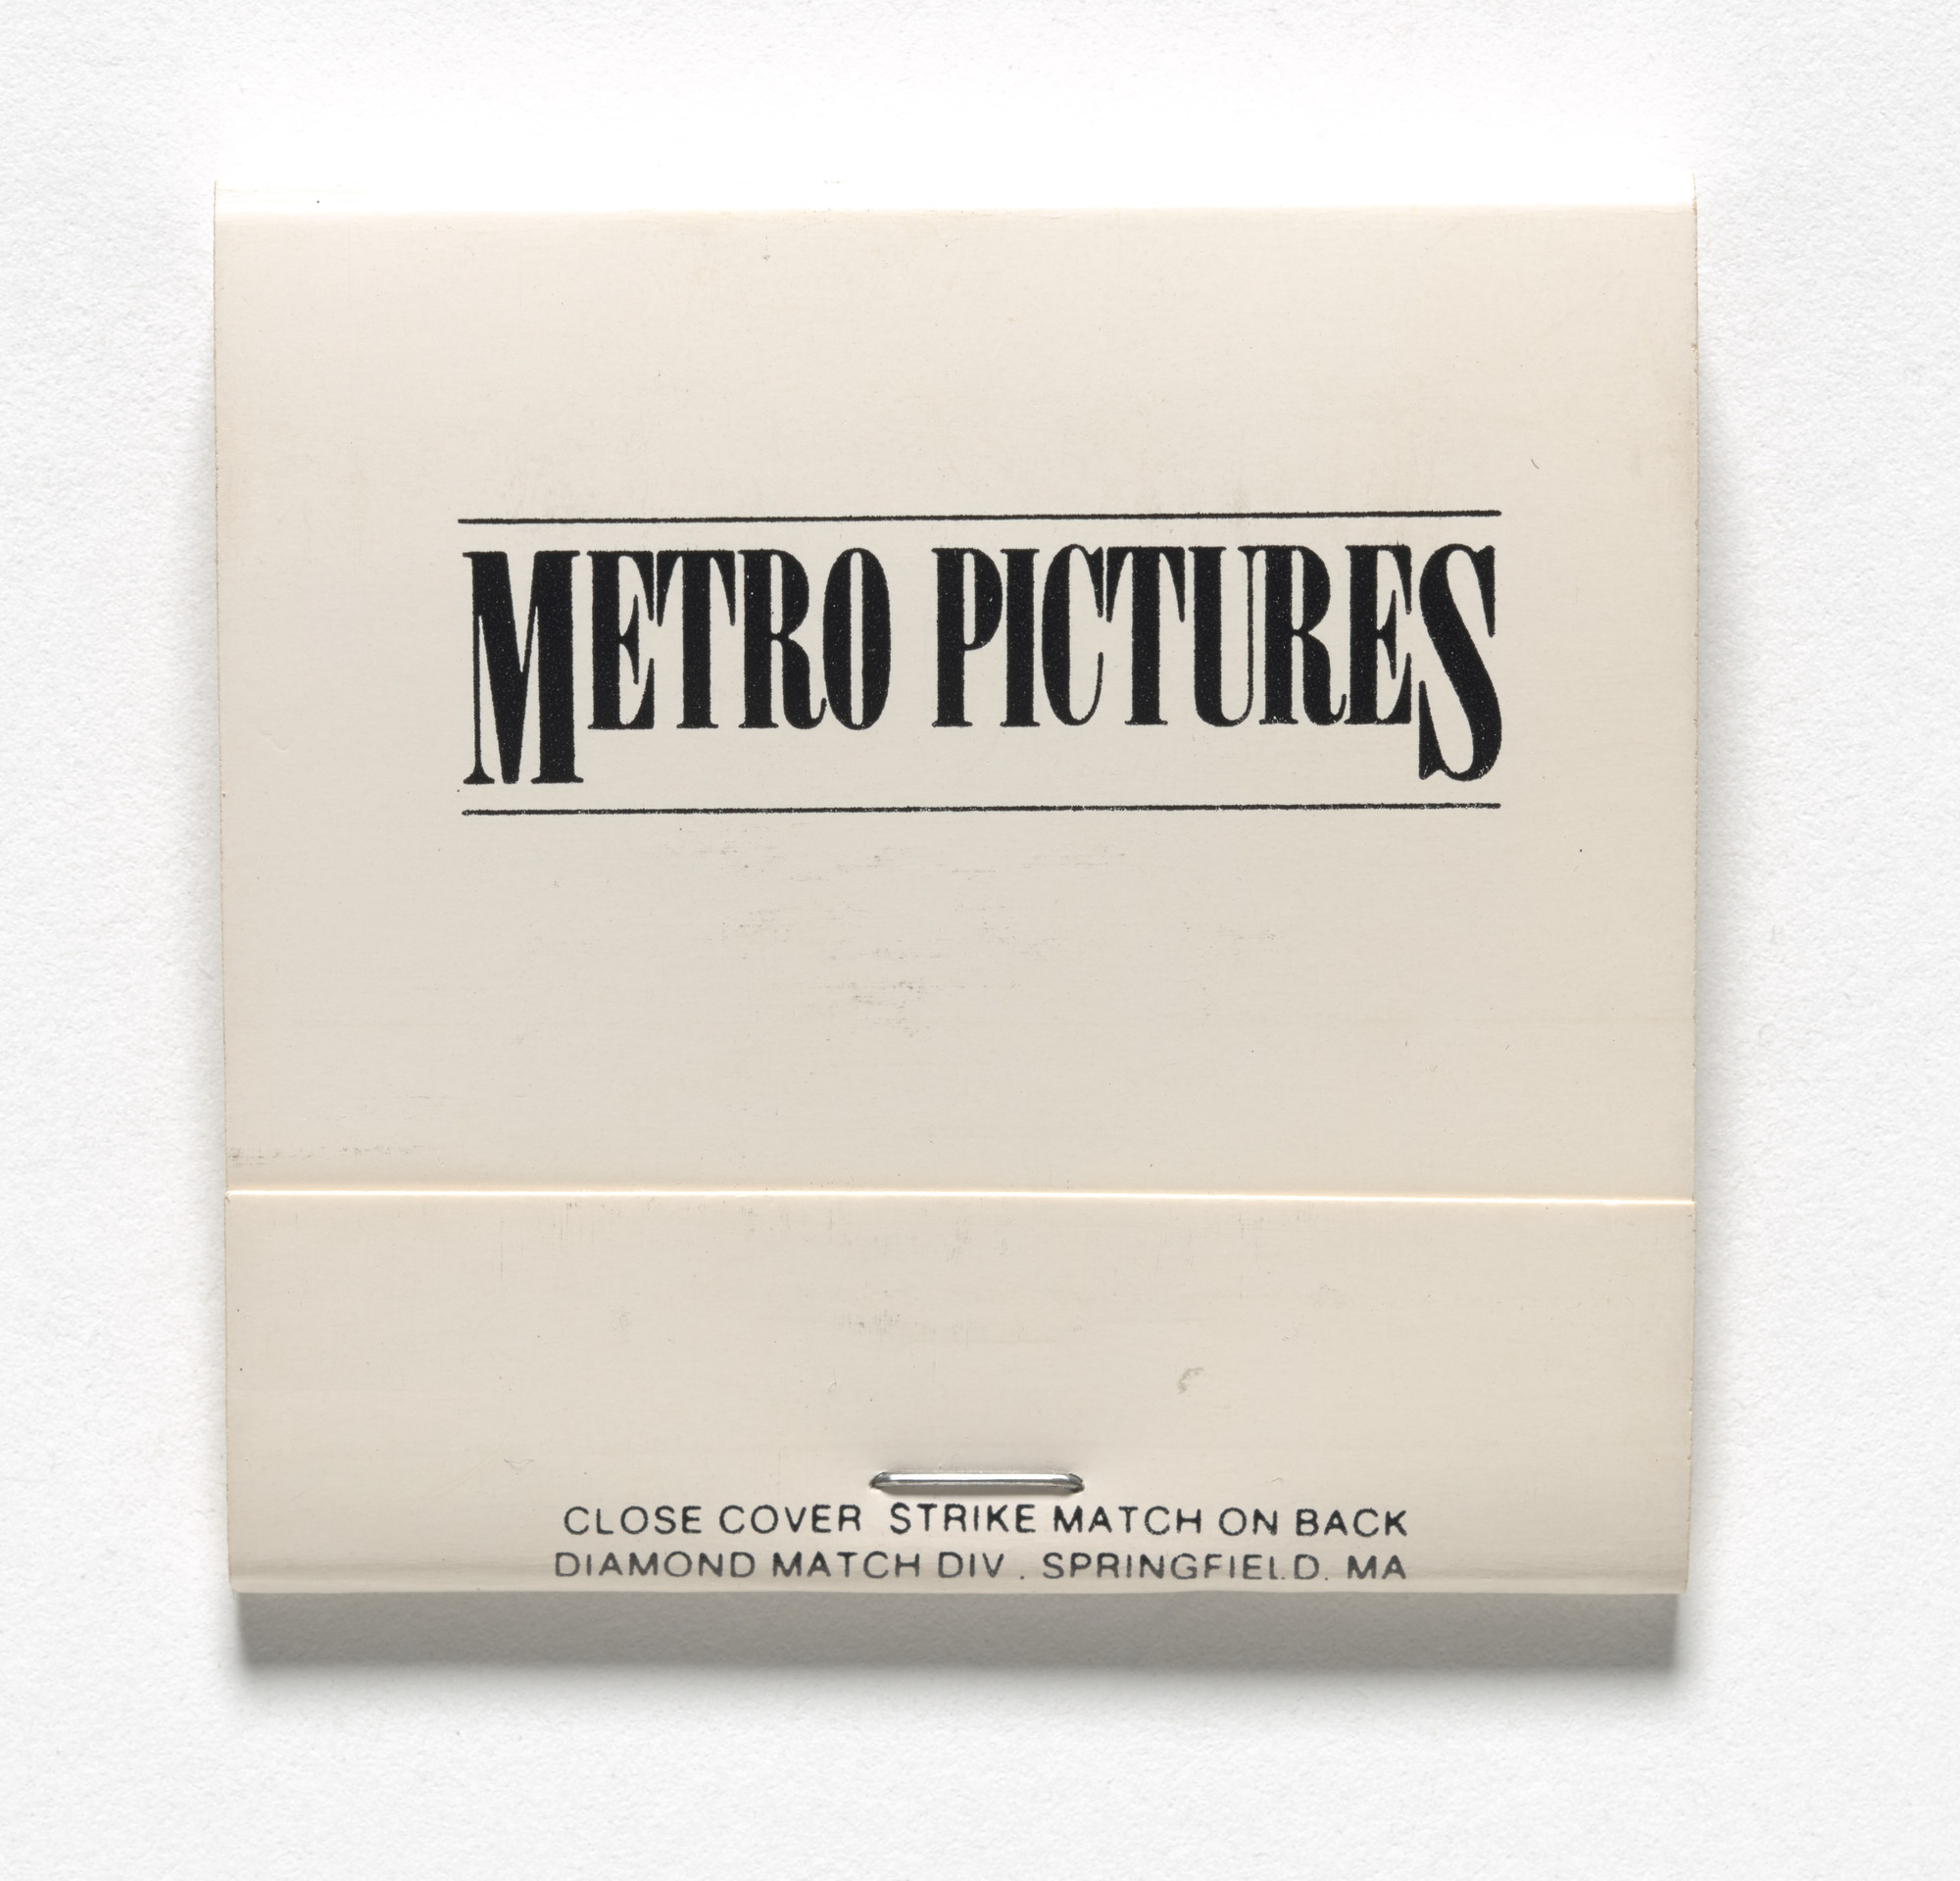 Louise Lawler. Matchbook for Arrangements of Pictures, Metro Pictures, New York, November 20–December 18, 1982. 1982